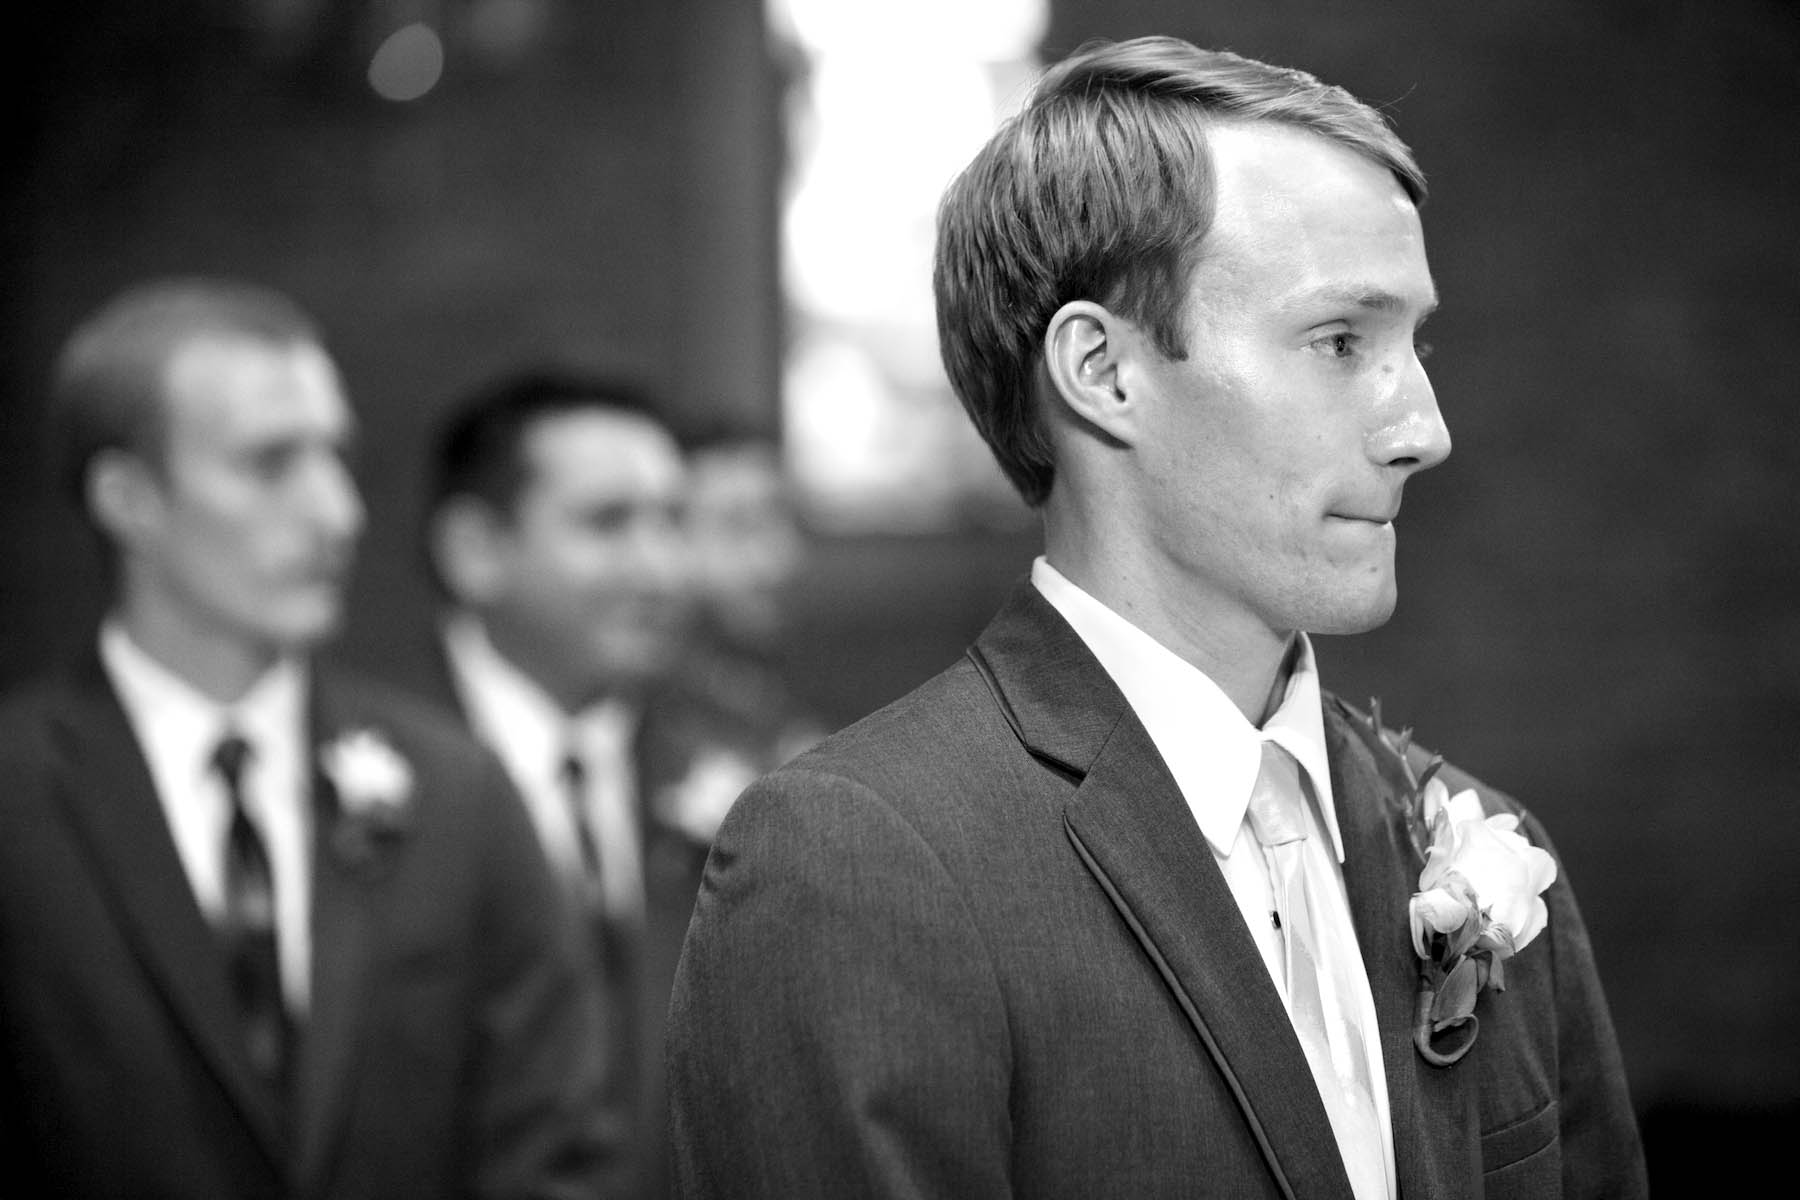 Brandon reacts as Alissa comes down the aisle, ceremony at Our Saviour Catholic Church, Jacksonville. Wedding photography by Tiffany & Steve Warmowski.